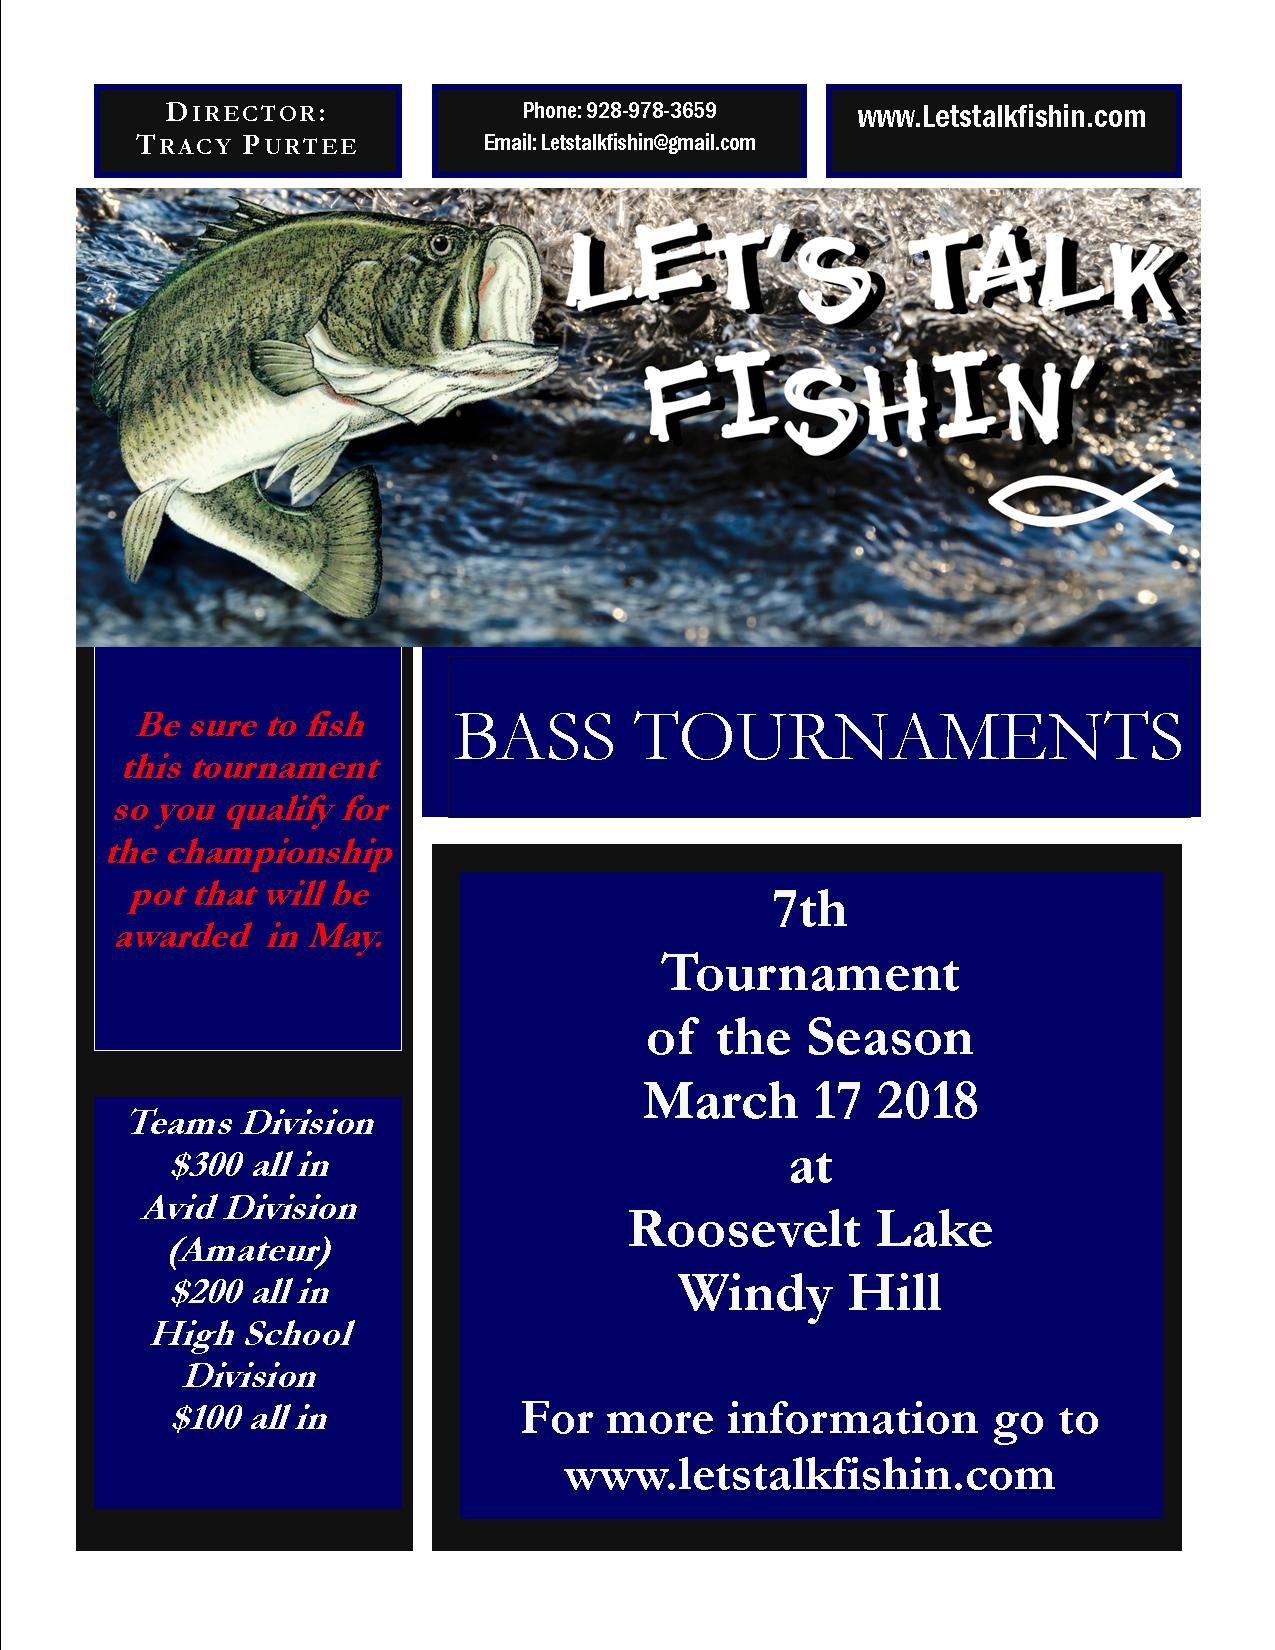 Click image for larger version  Name:7th Tournament.jpg Views:1010 Size:283.6 KB ID:96826